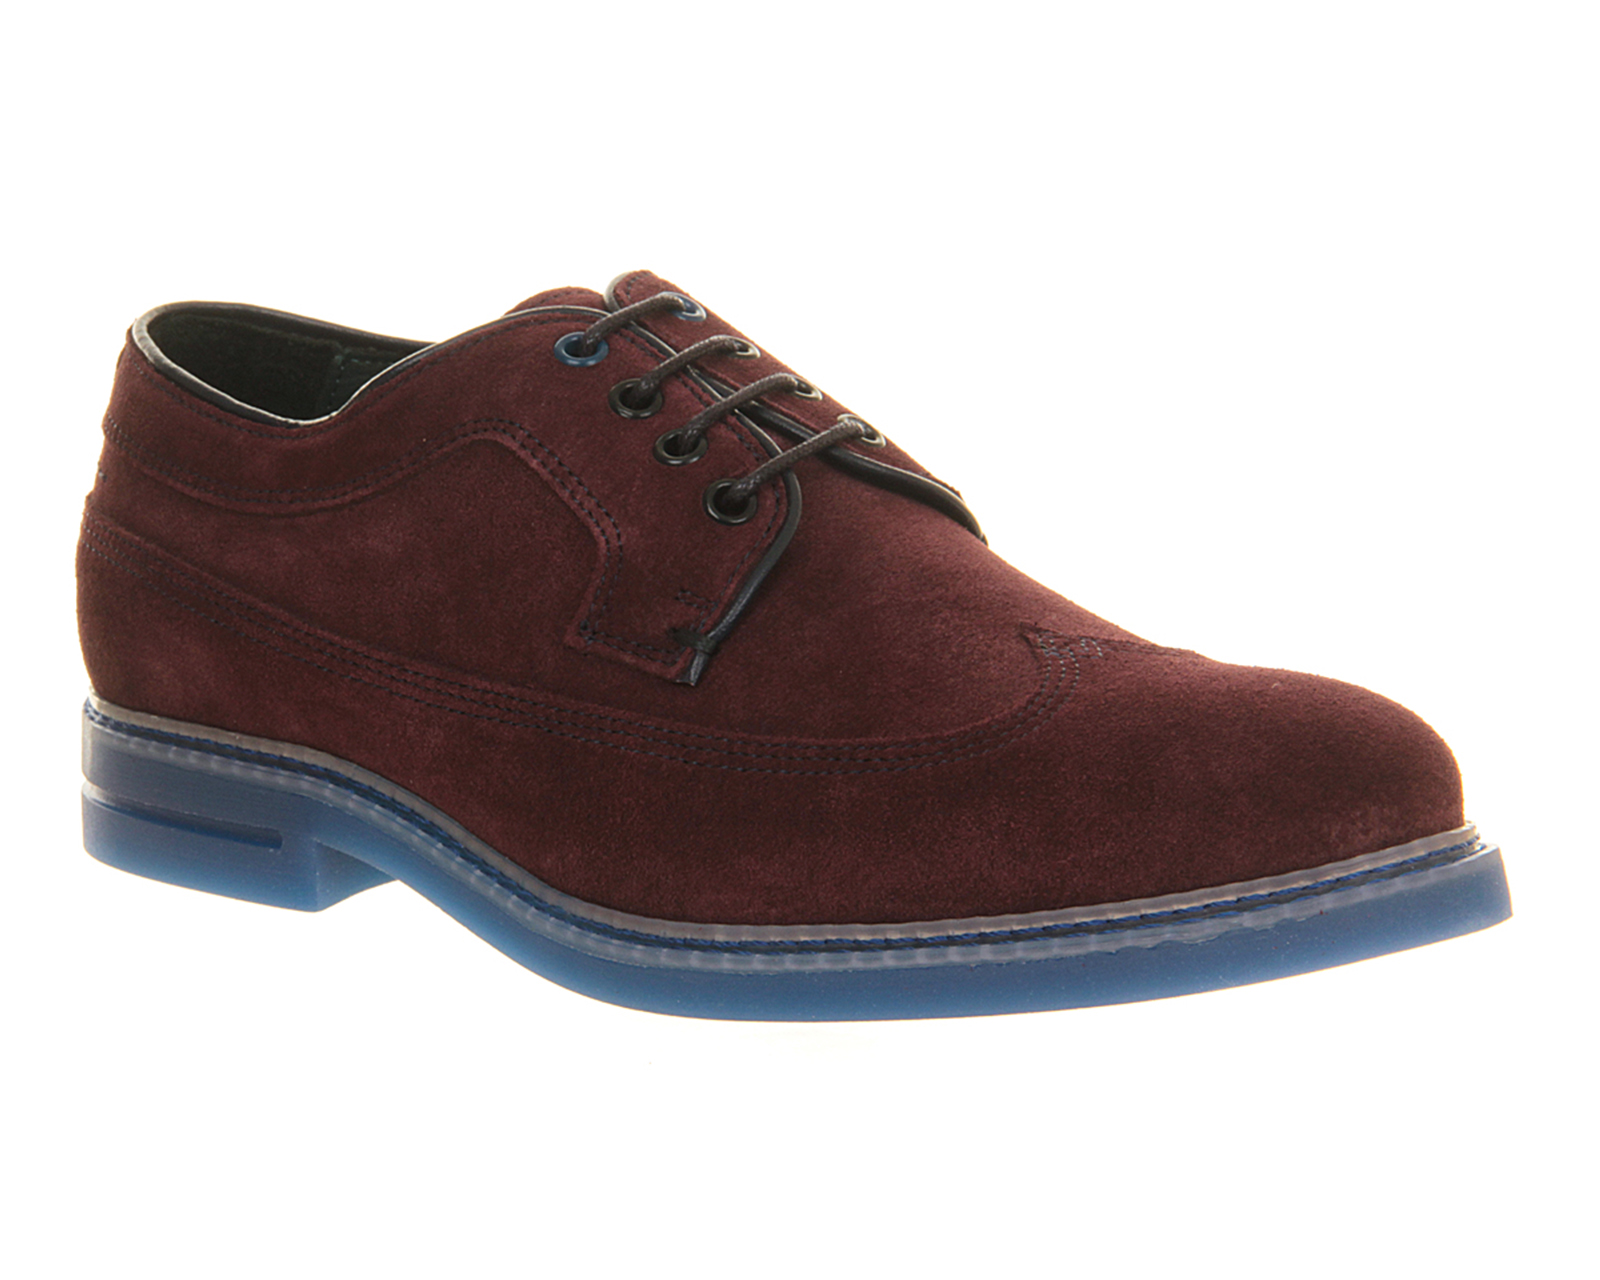 Ted Baker Mens Size  Shoes